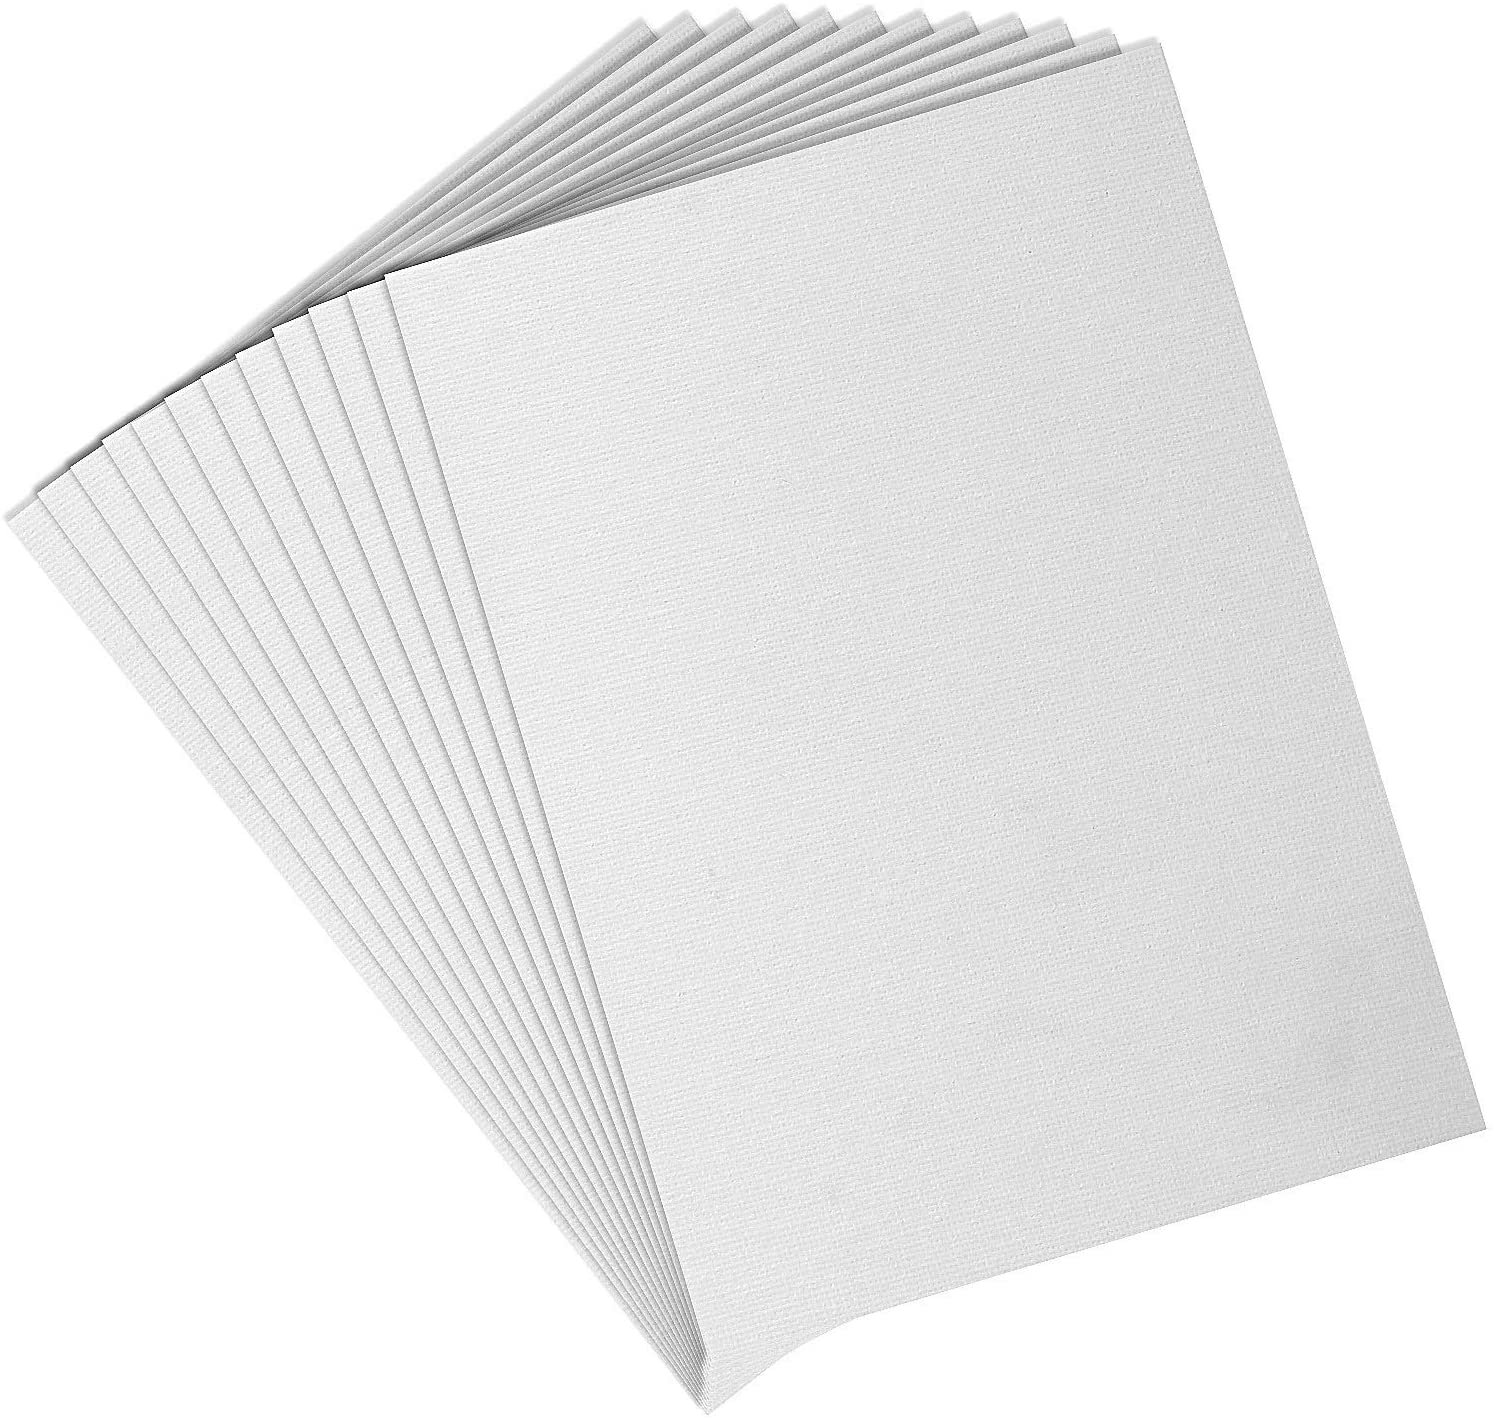 LANIAKEA 12 Pack Canvas Panels 8x10 Artist Canvas Boards White Blank Canvas Panels for Painting, Hobby Painters, Students & Kids